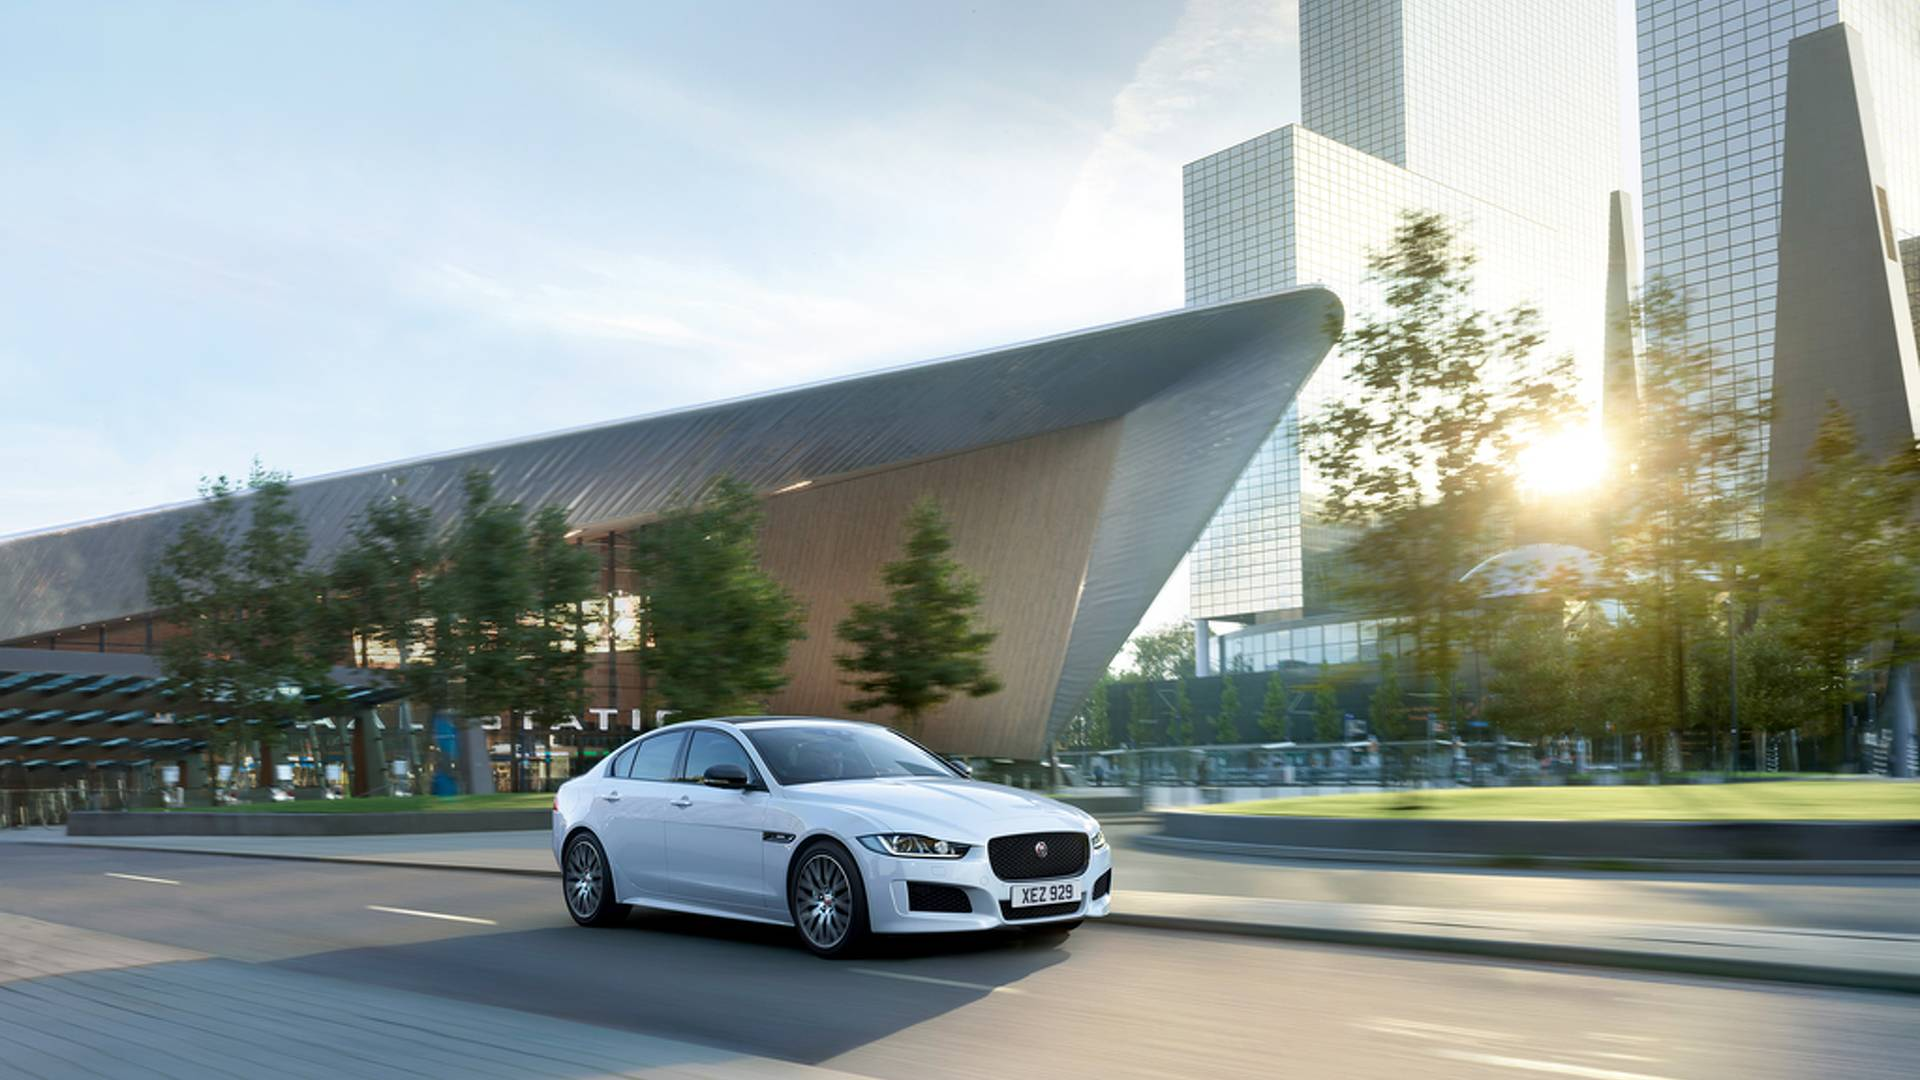 2019-jaguar-xe-landmark-edition (2)